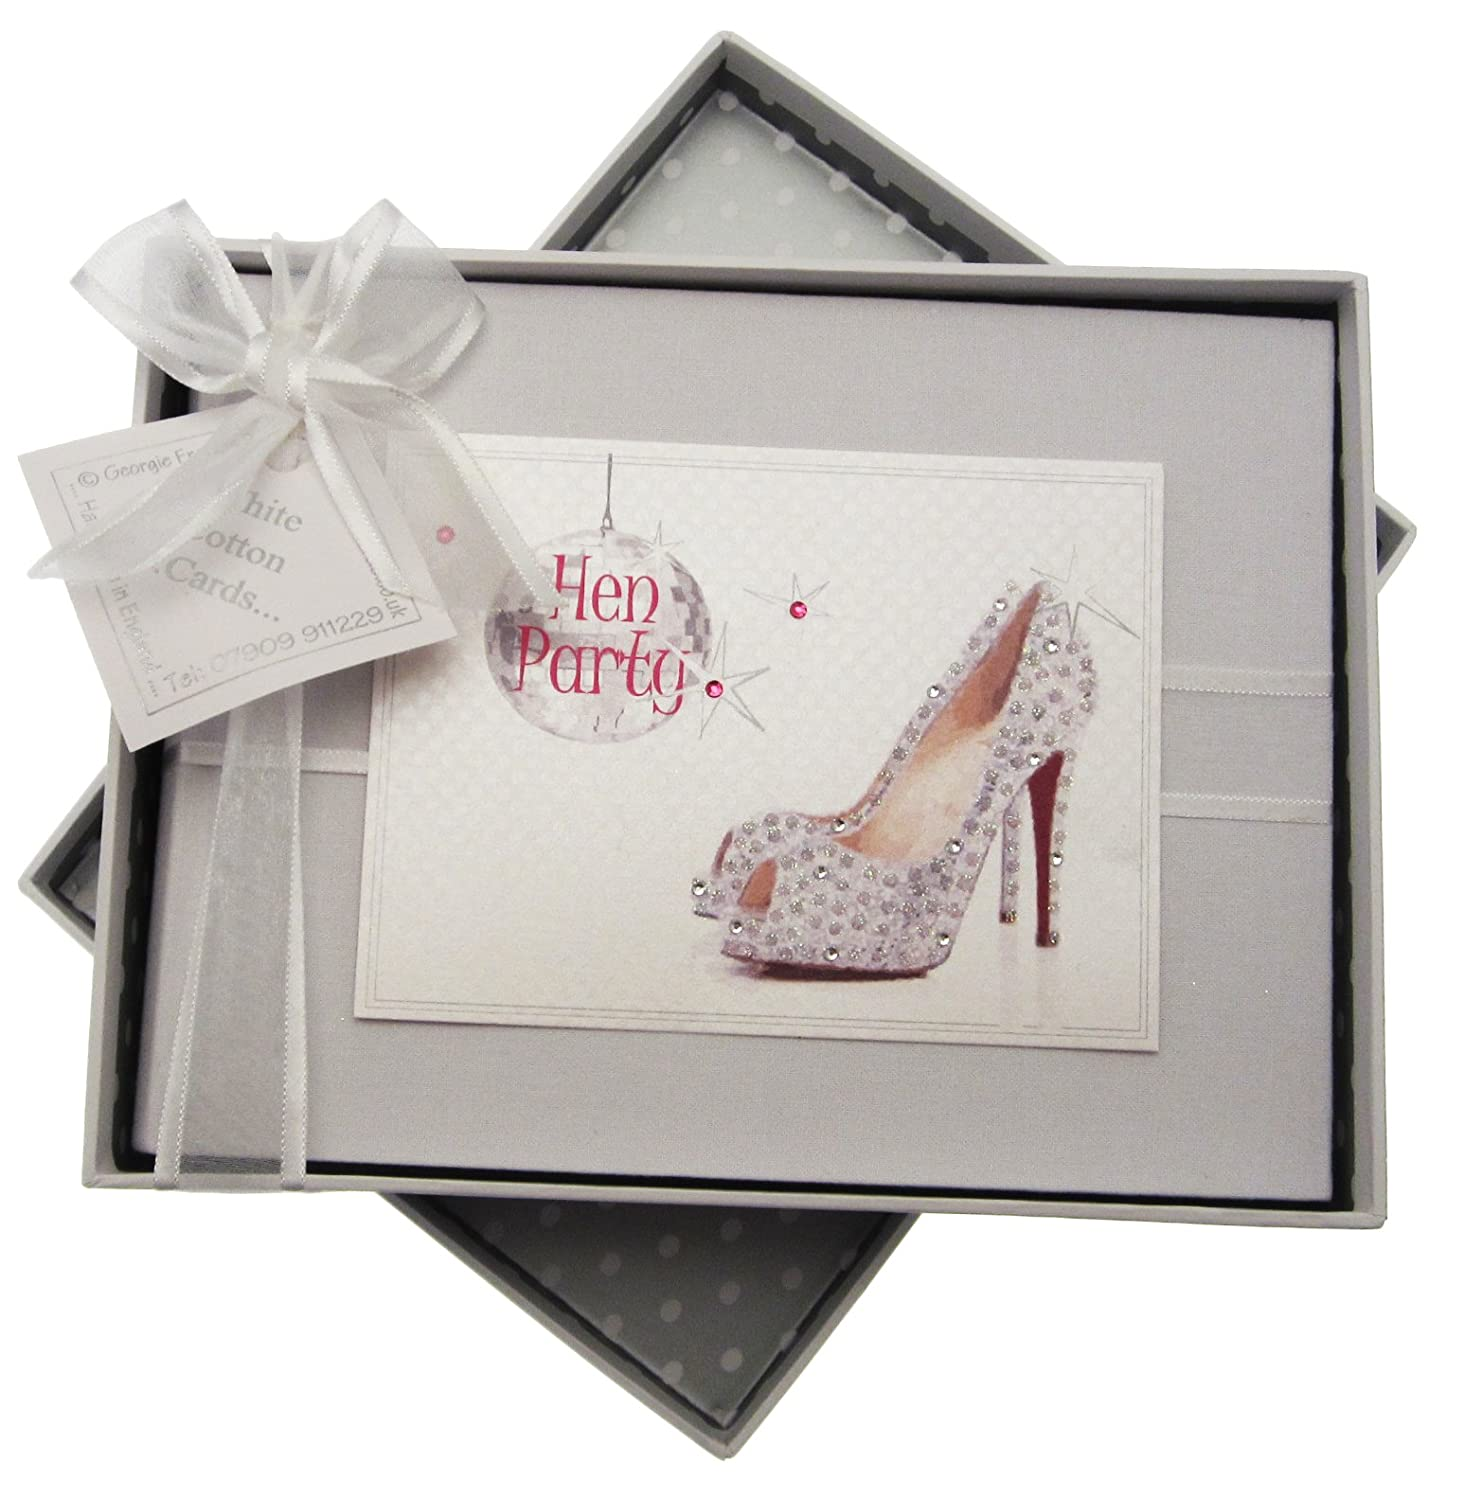 Glitter Ball//Sparkly Shoe white cotton cards Hen Party Photo Album